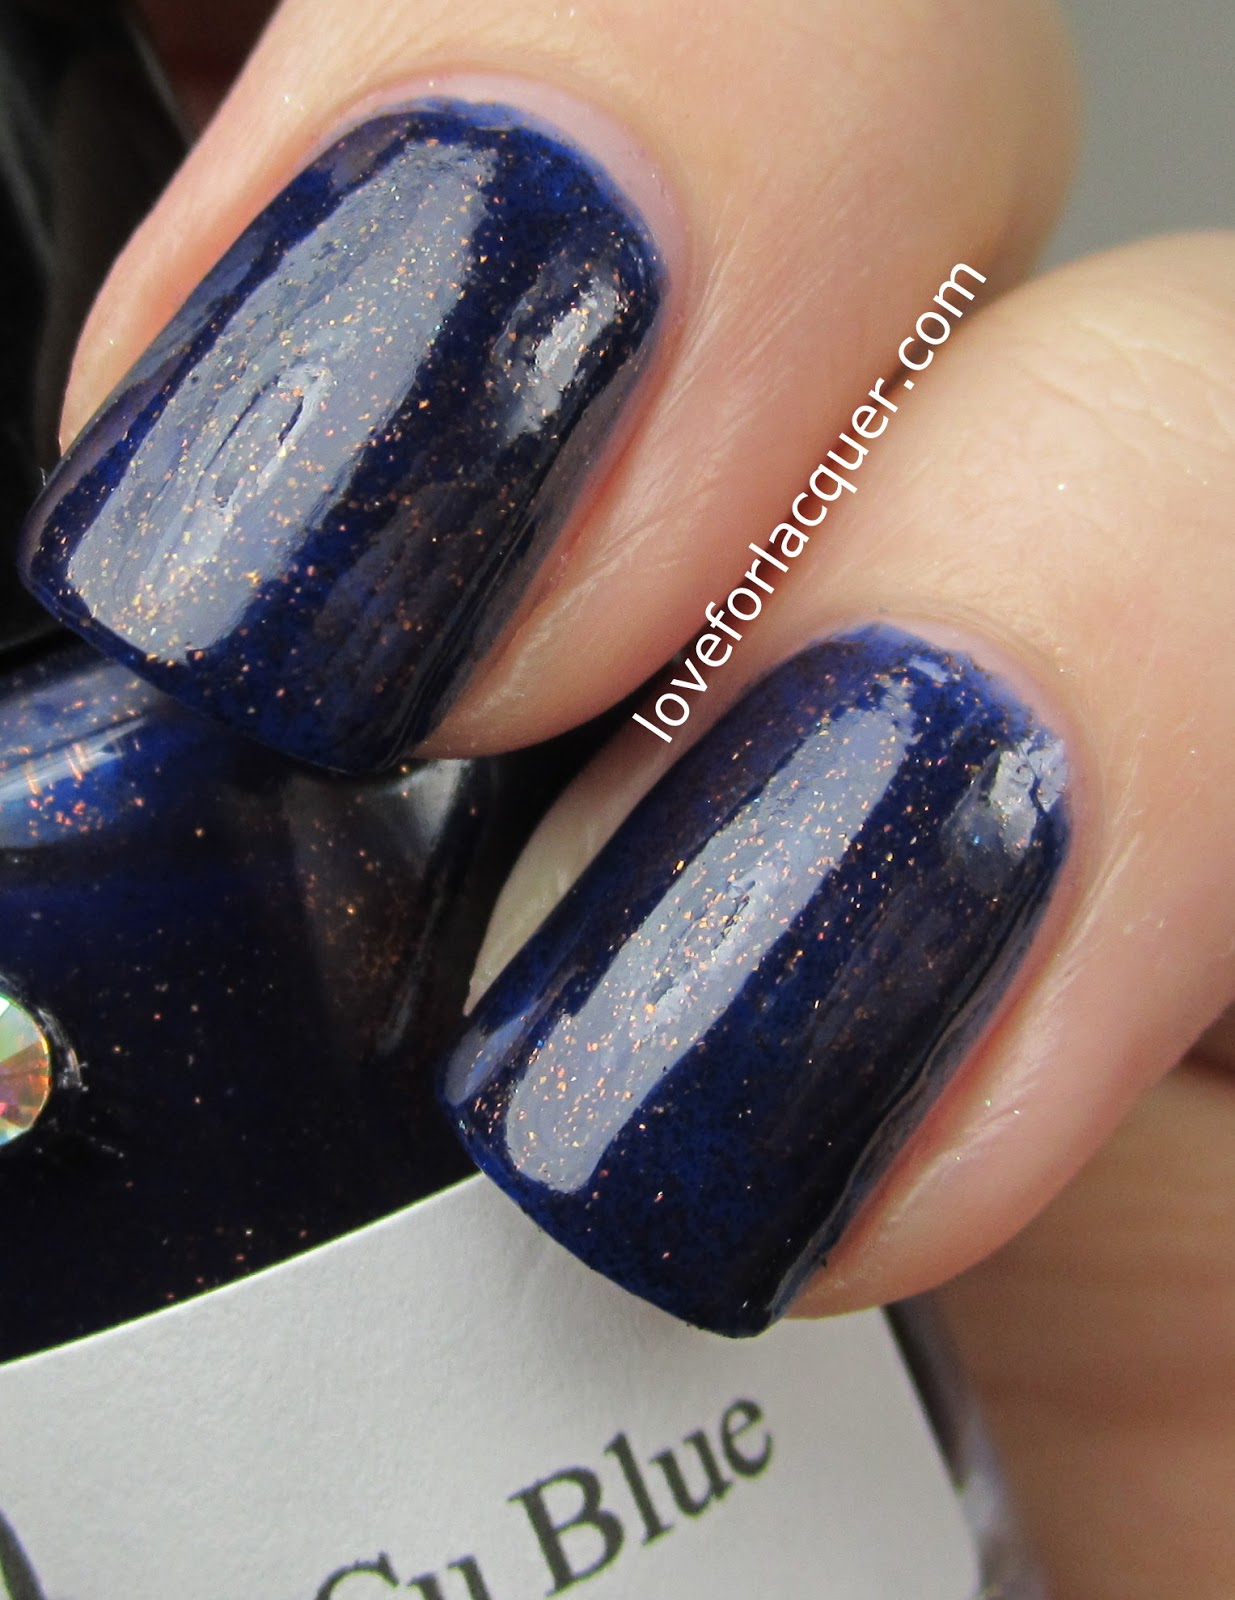 Girly Bits Nail Polish Swatches & Review - Love for Lacquer